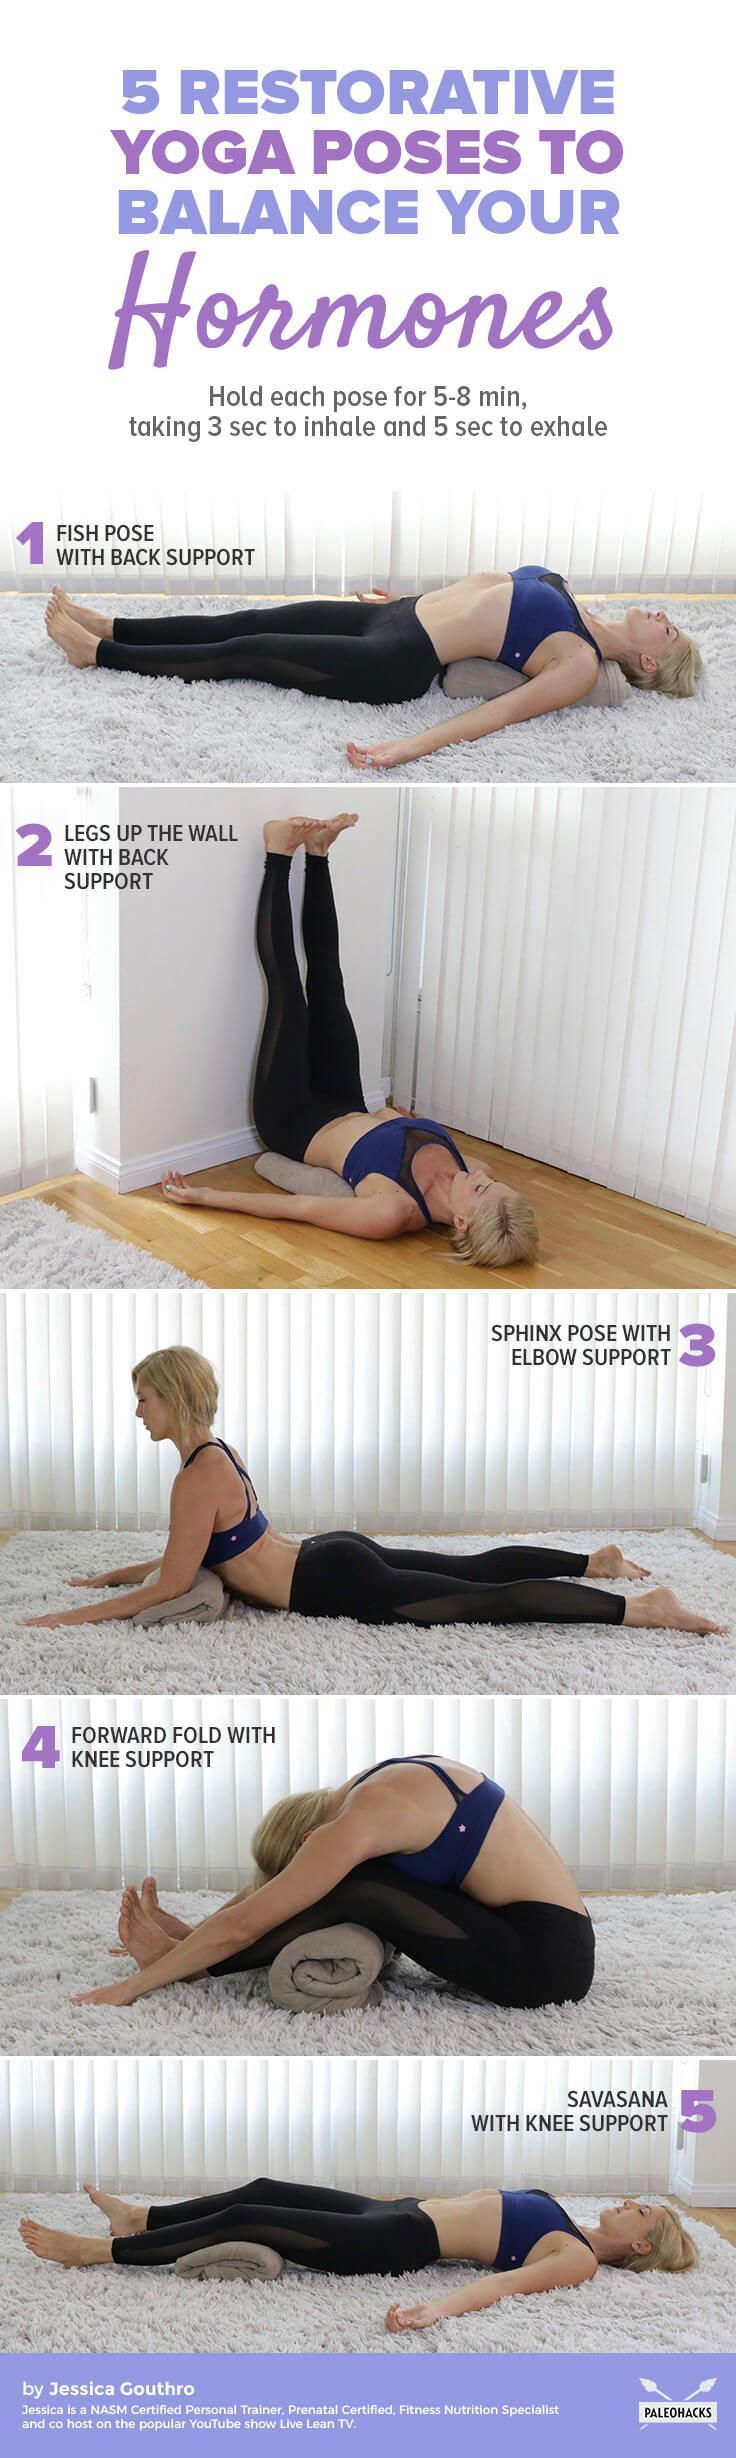 Have you noticed your hormones may be off-balance? Here is a relaxing yoga routine to help get you back on track. Get the full yoga sequence here: http://paleo.co/yogaforhormones